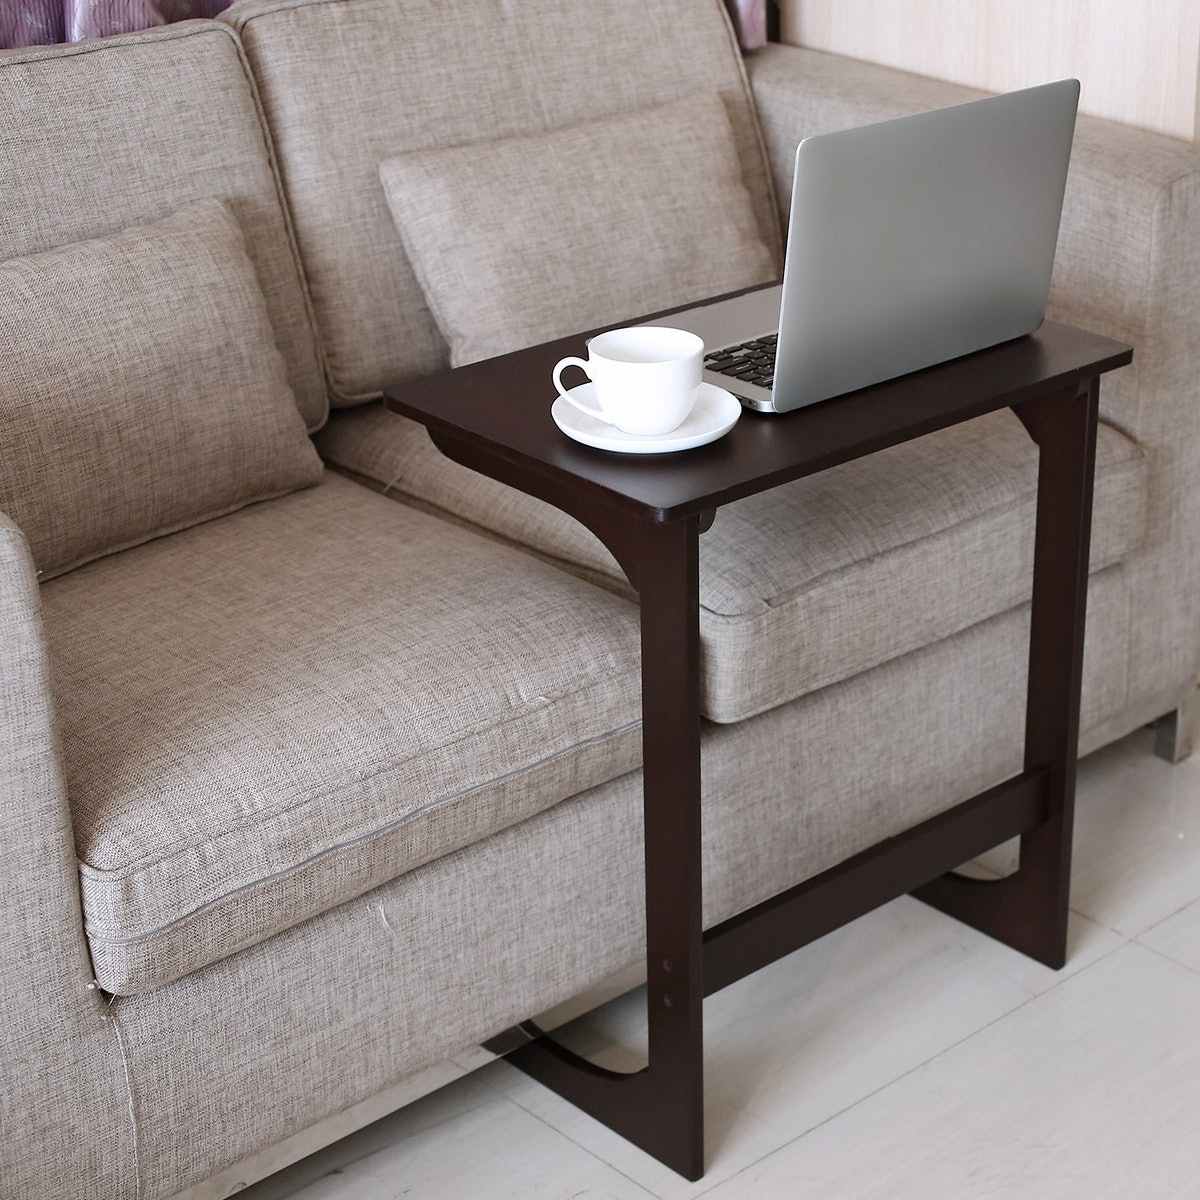 HOMFA Bamboo Couch Laptop Desk